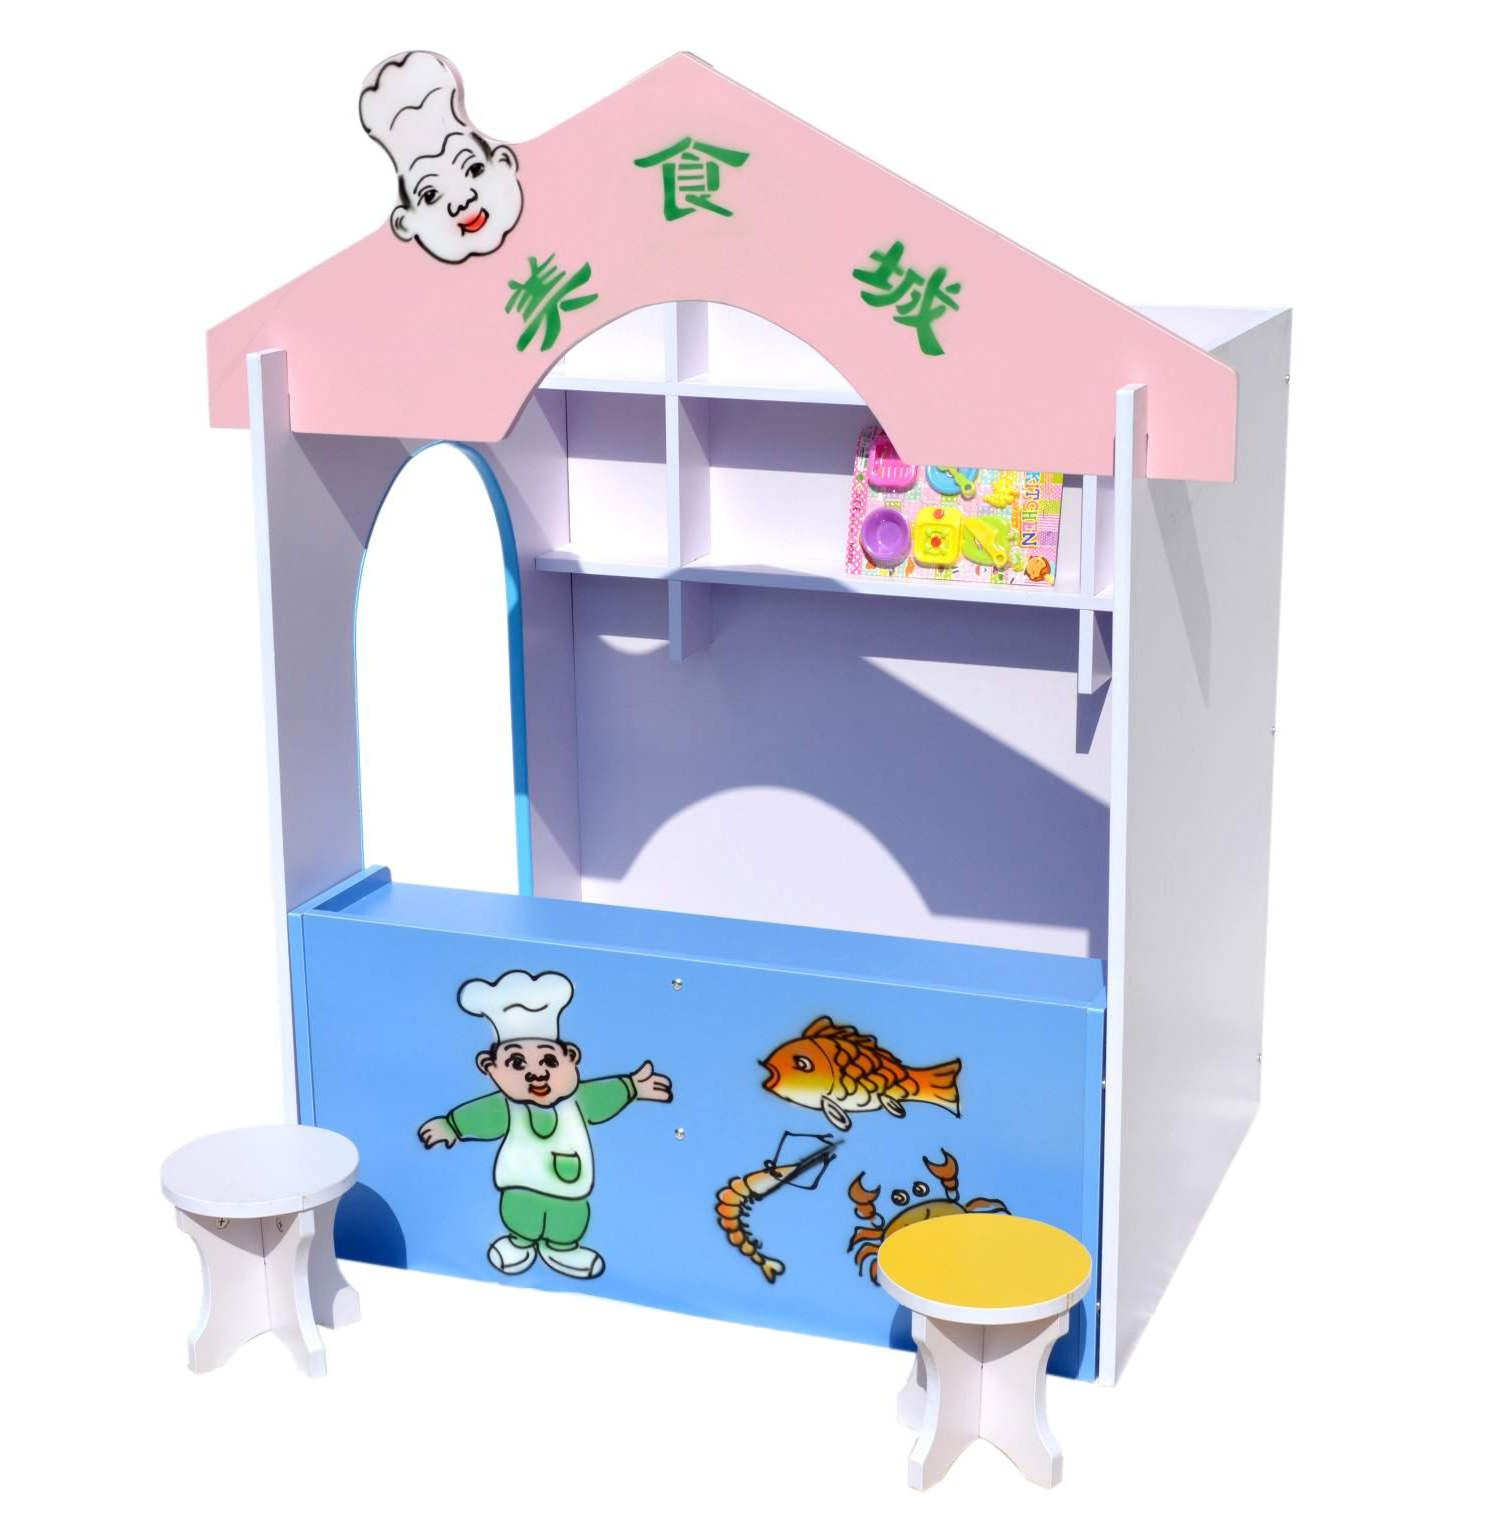 Japan purchase game house custom role play kindergarten house, toy area, naughty castle small